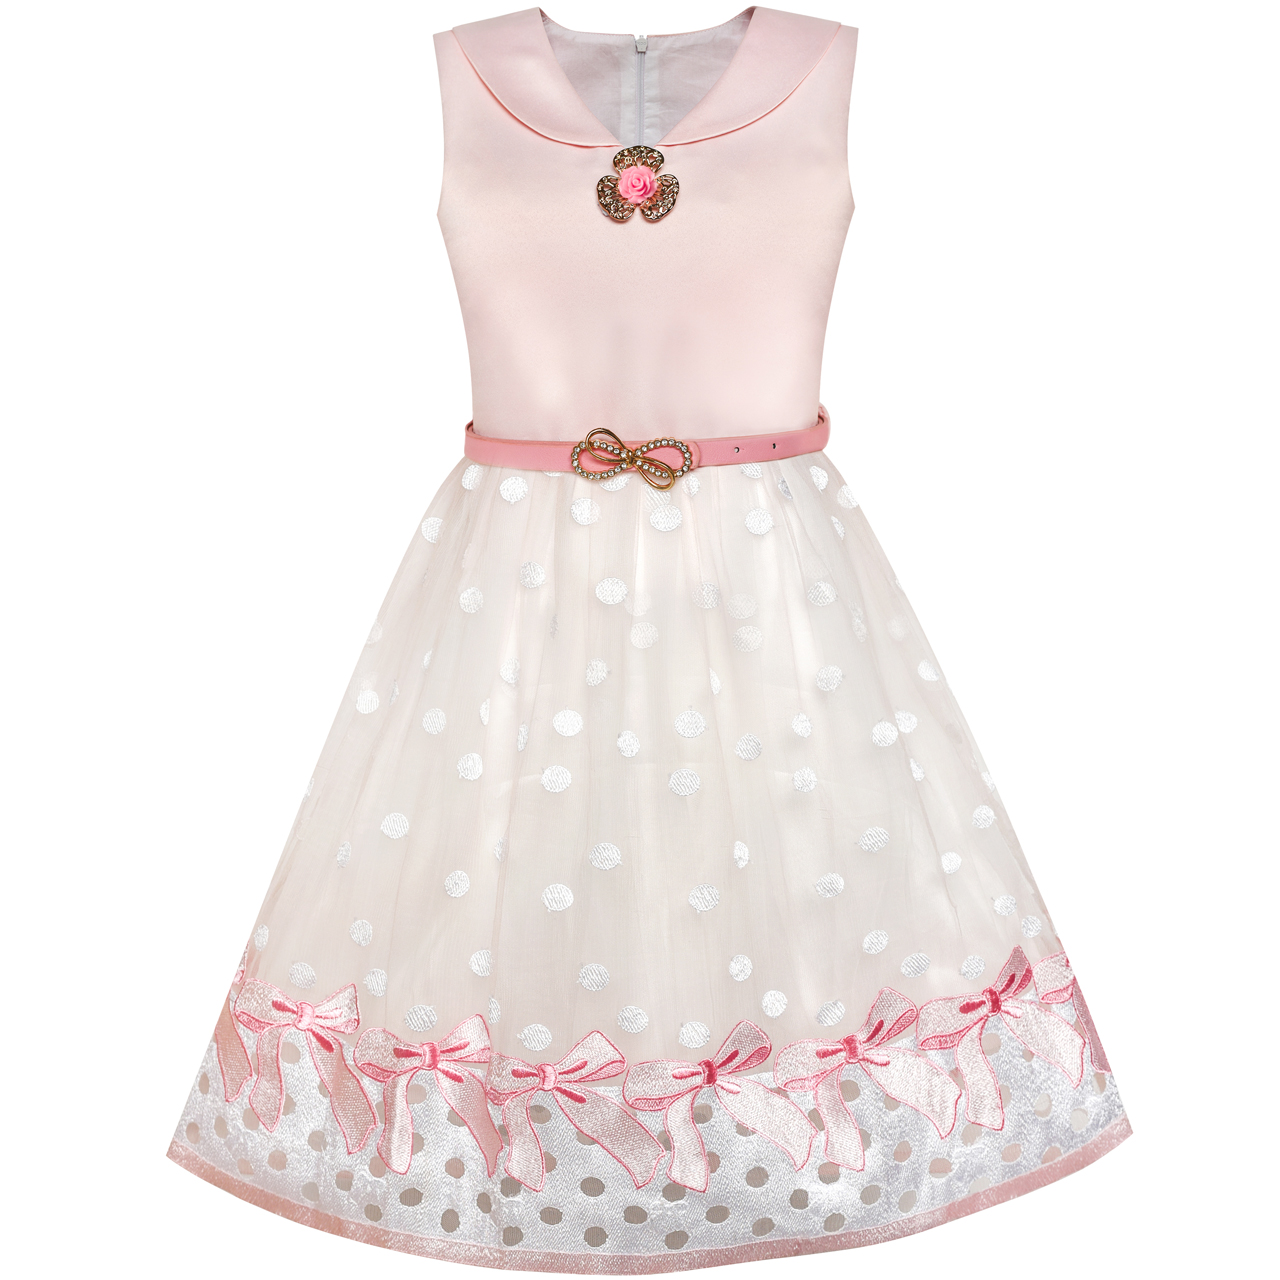 цена на Flower Girl Dress Sailor Collar Pink Belted Bow Tie Elegant Dress 2018 Summer Princess Wedding Party Dresses Clothes Size 7-14